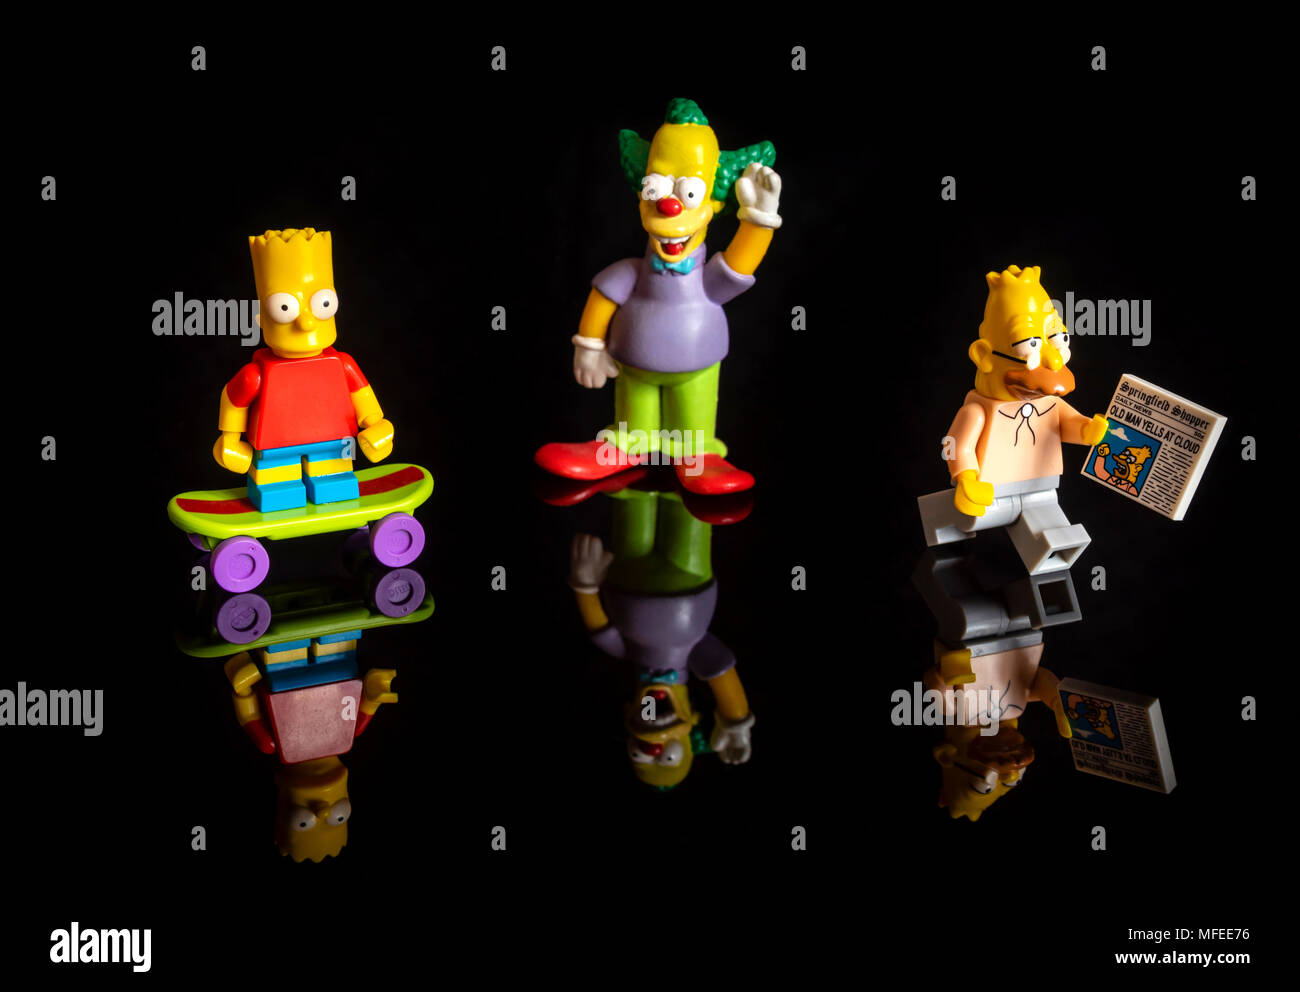 The Simpsons Lego miniature figures (Bart Simpson, Krusty the Clown and Grampa Simpson) on reflective black background - Stock Image